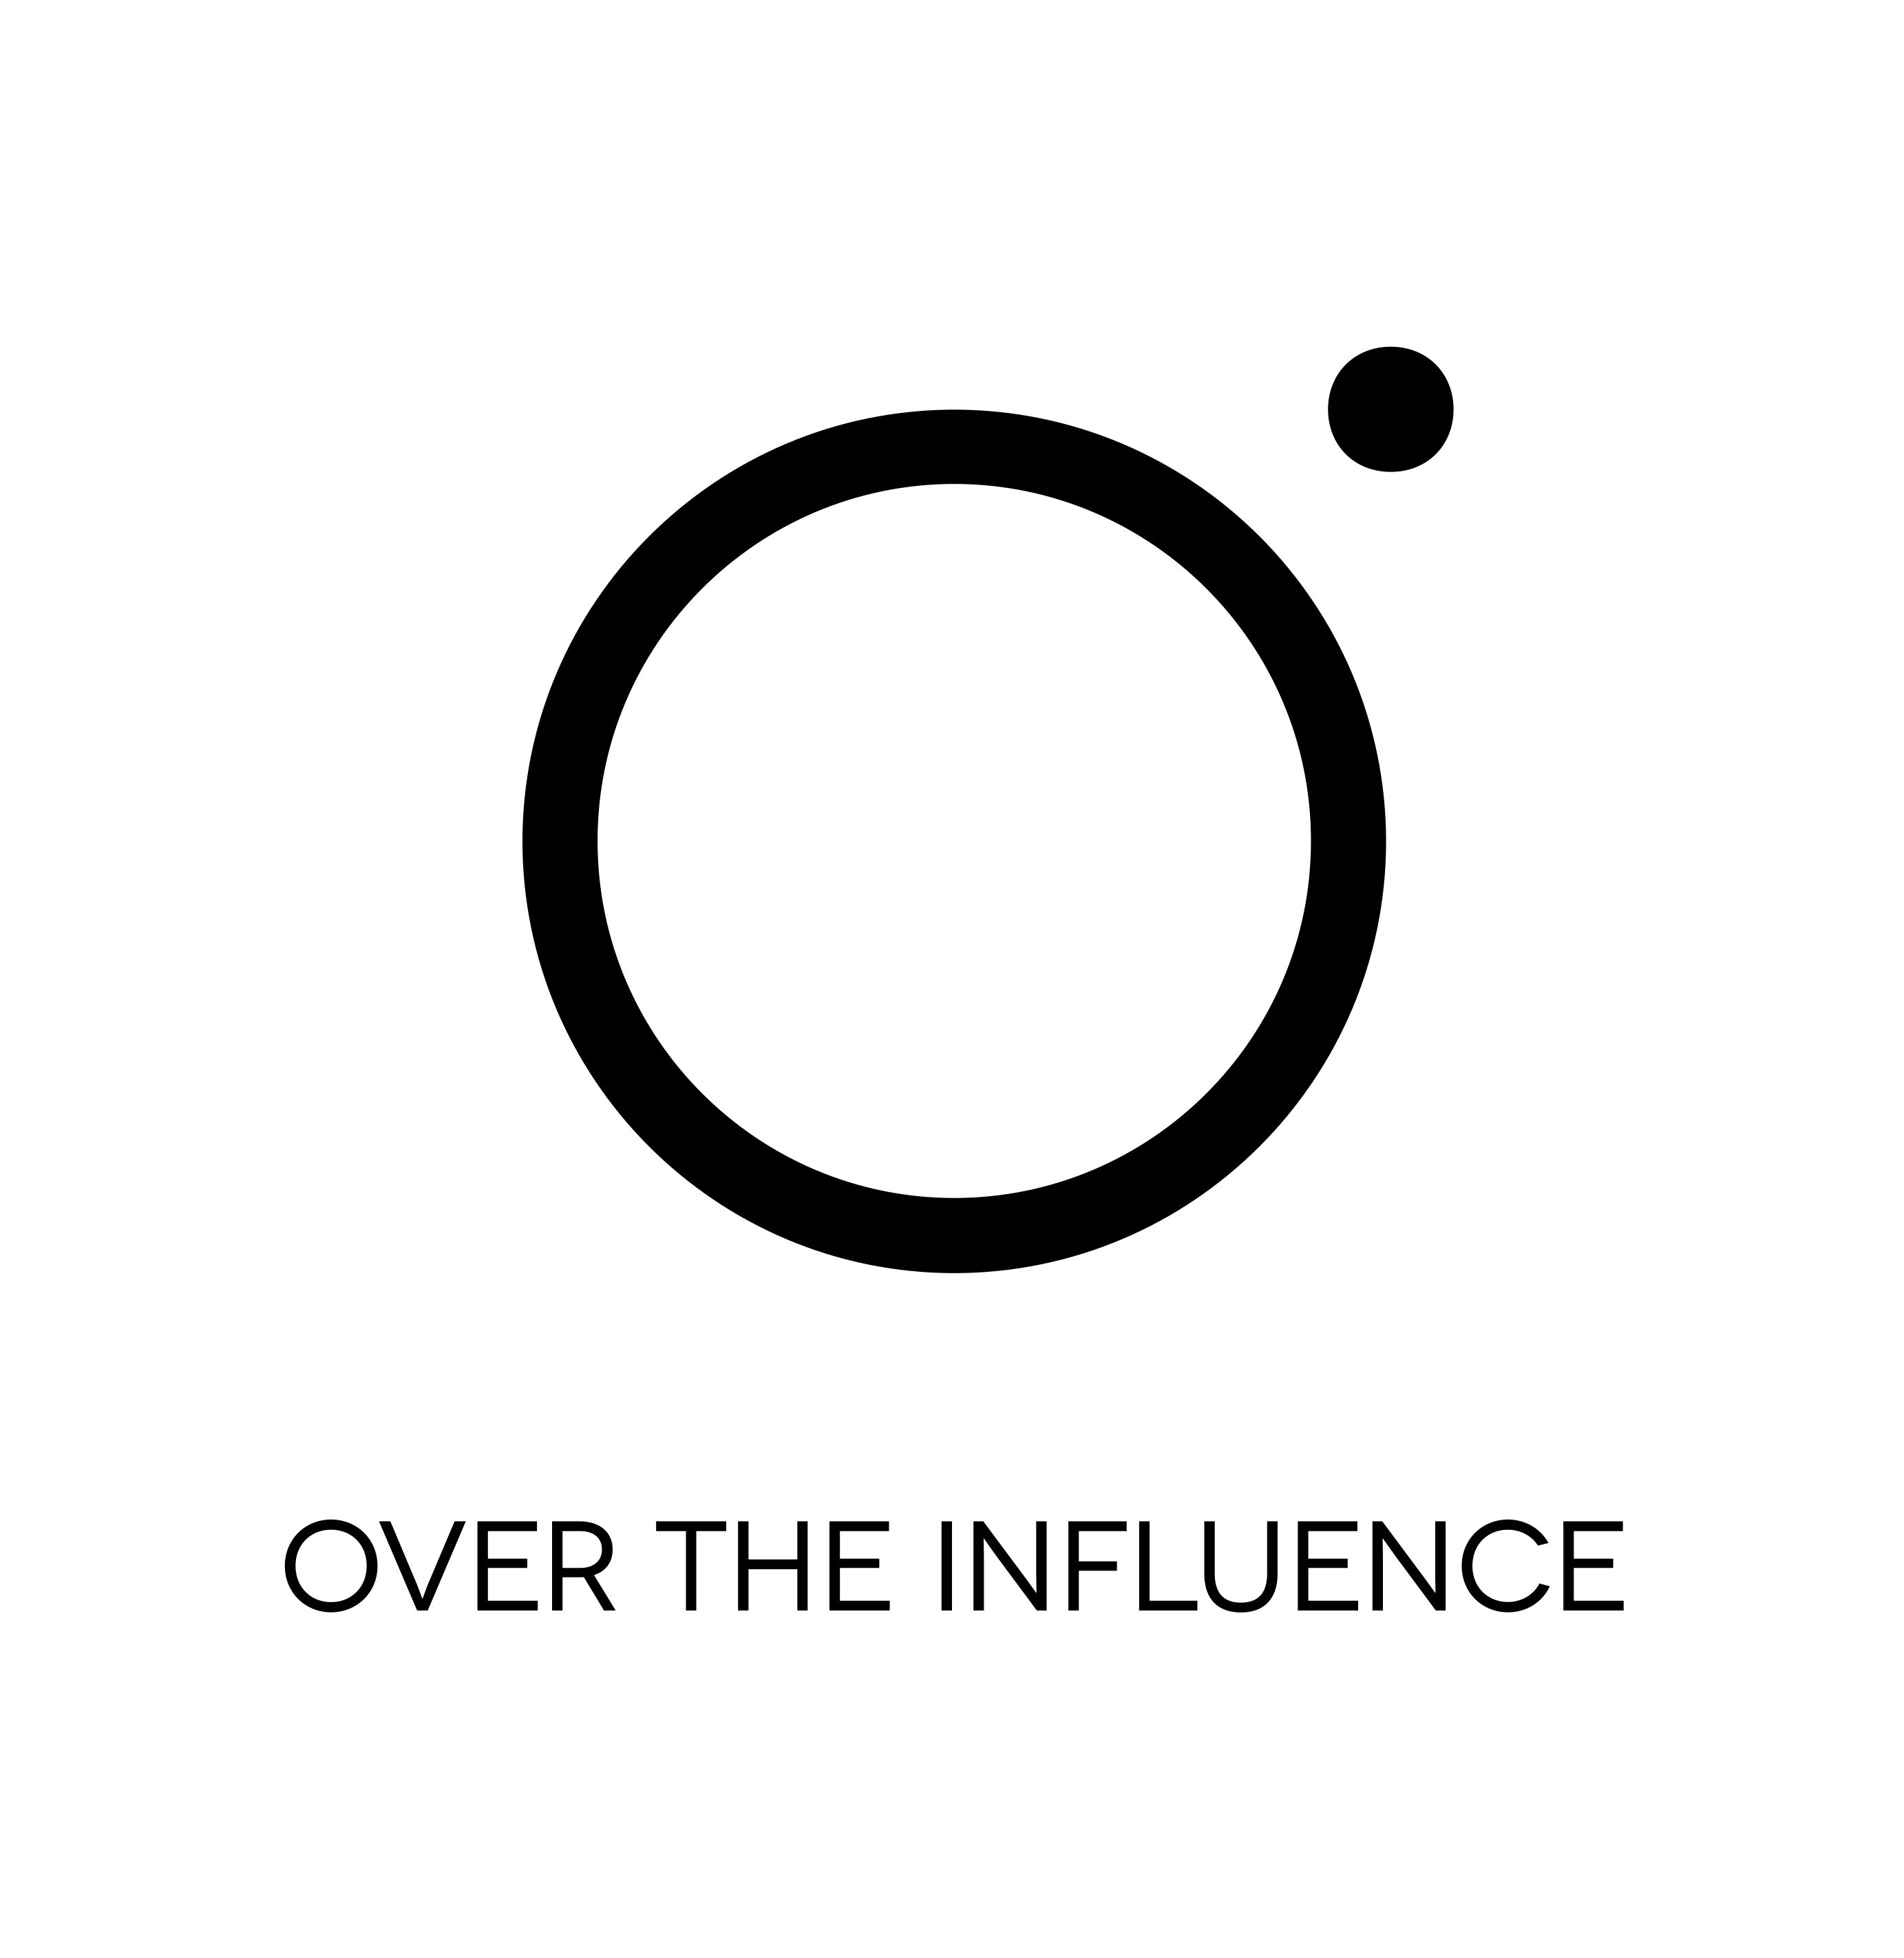 Over the Influence company logo